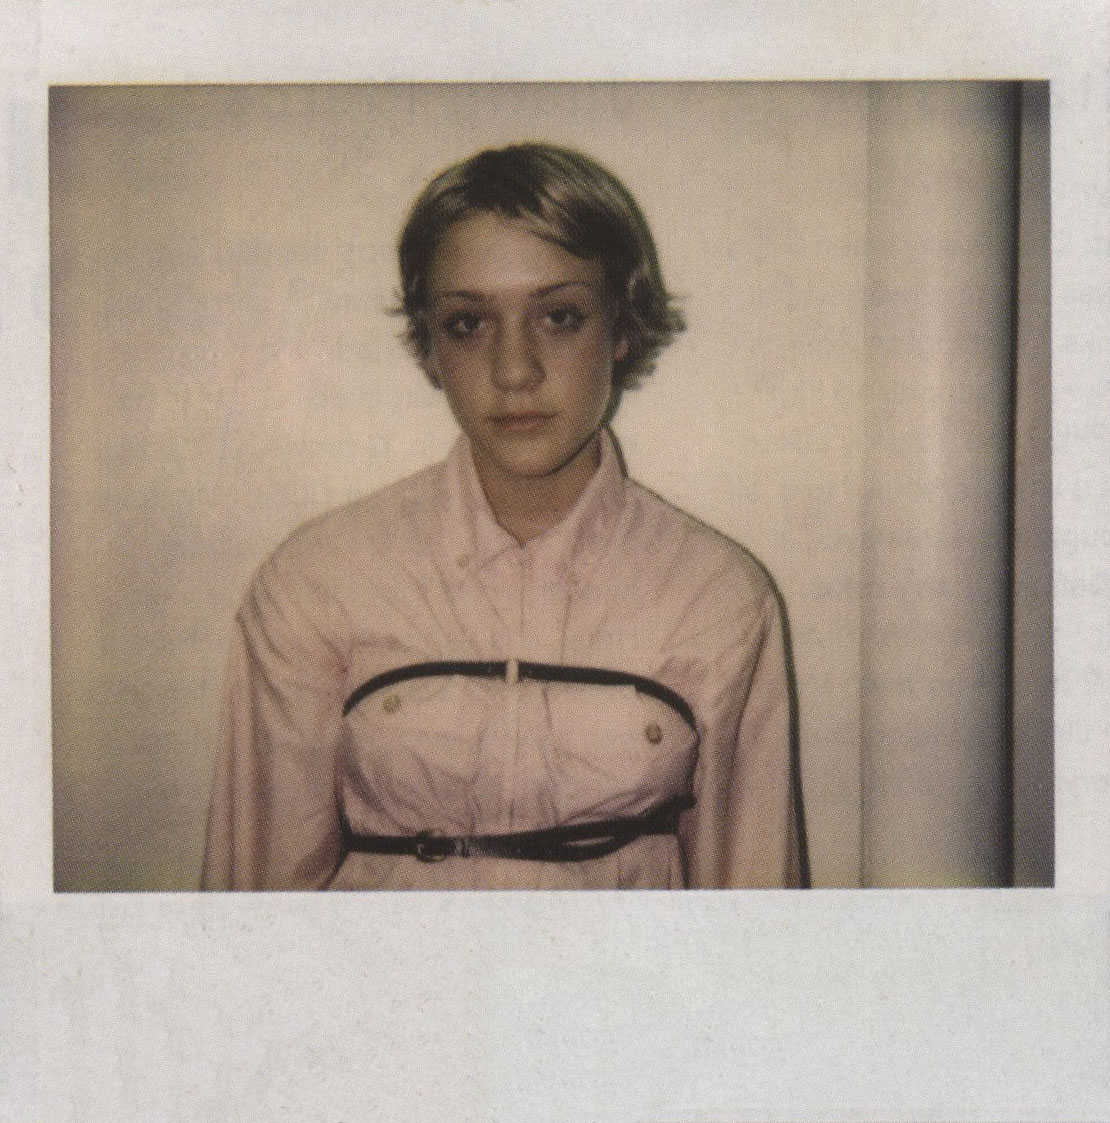 CHLOE SEVIGNY | ORIGINAL POLAROID FOR KIDS BY LARRY CLARK | THE FACE NO 69 | OCTOBER 2002